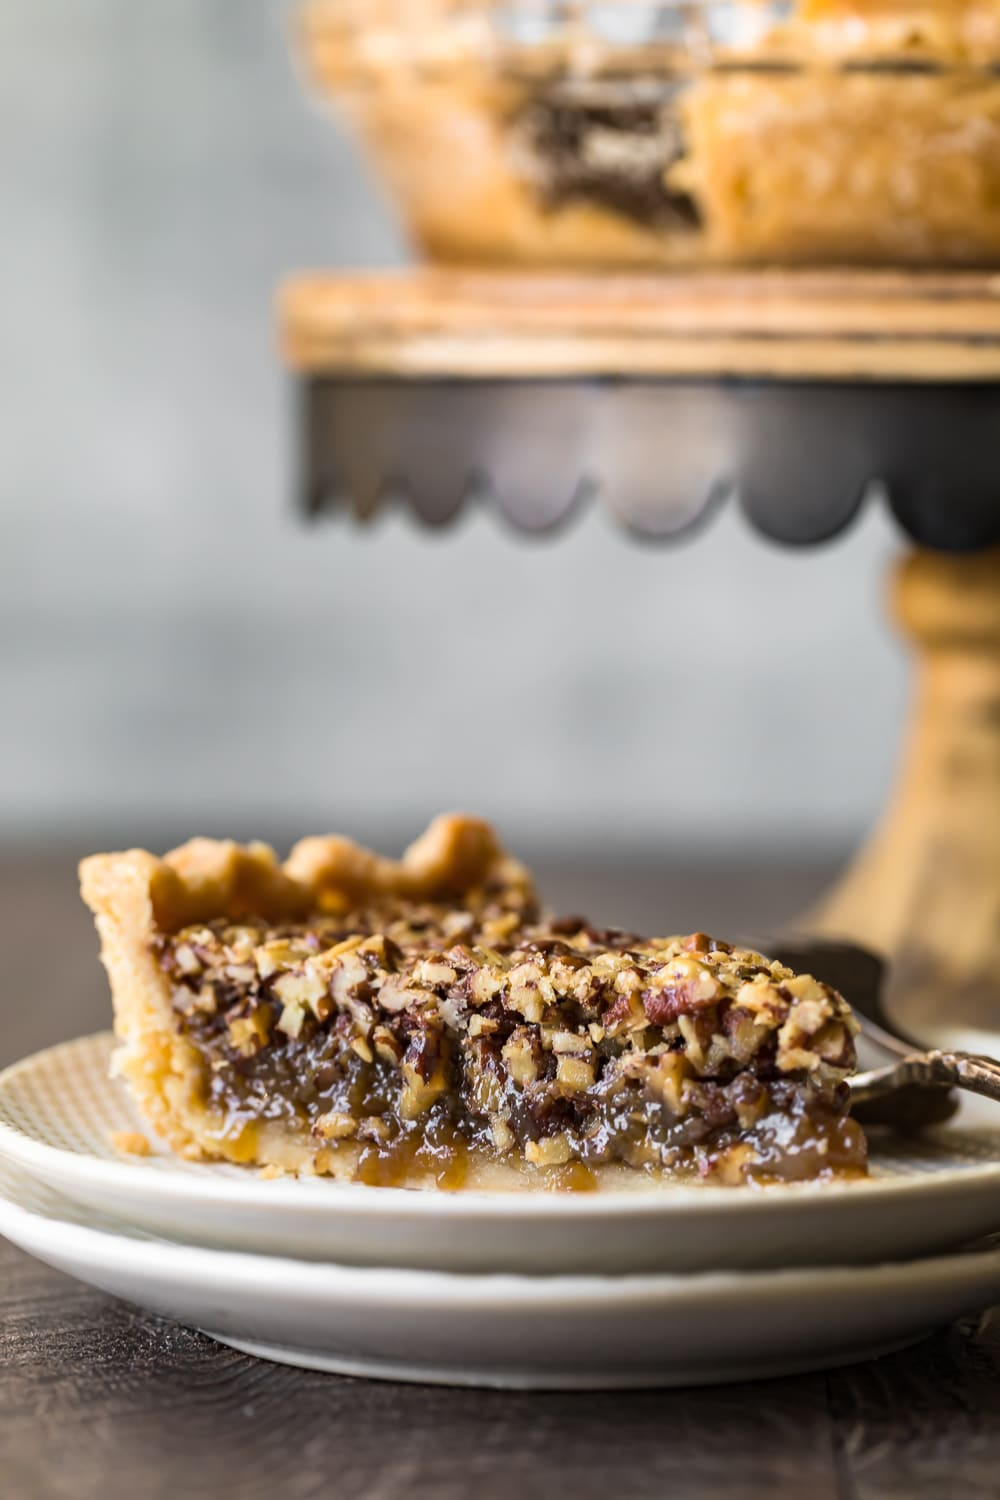 A slice of pecan pie served and ready to eat